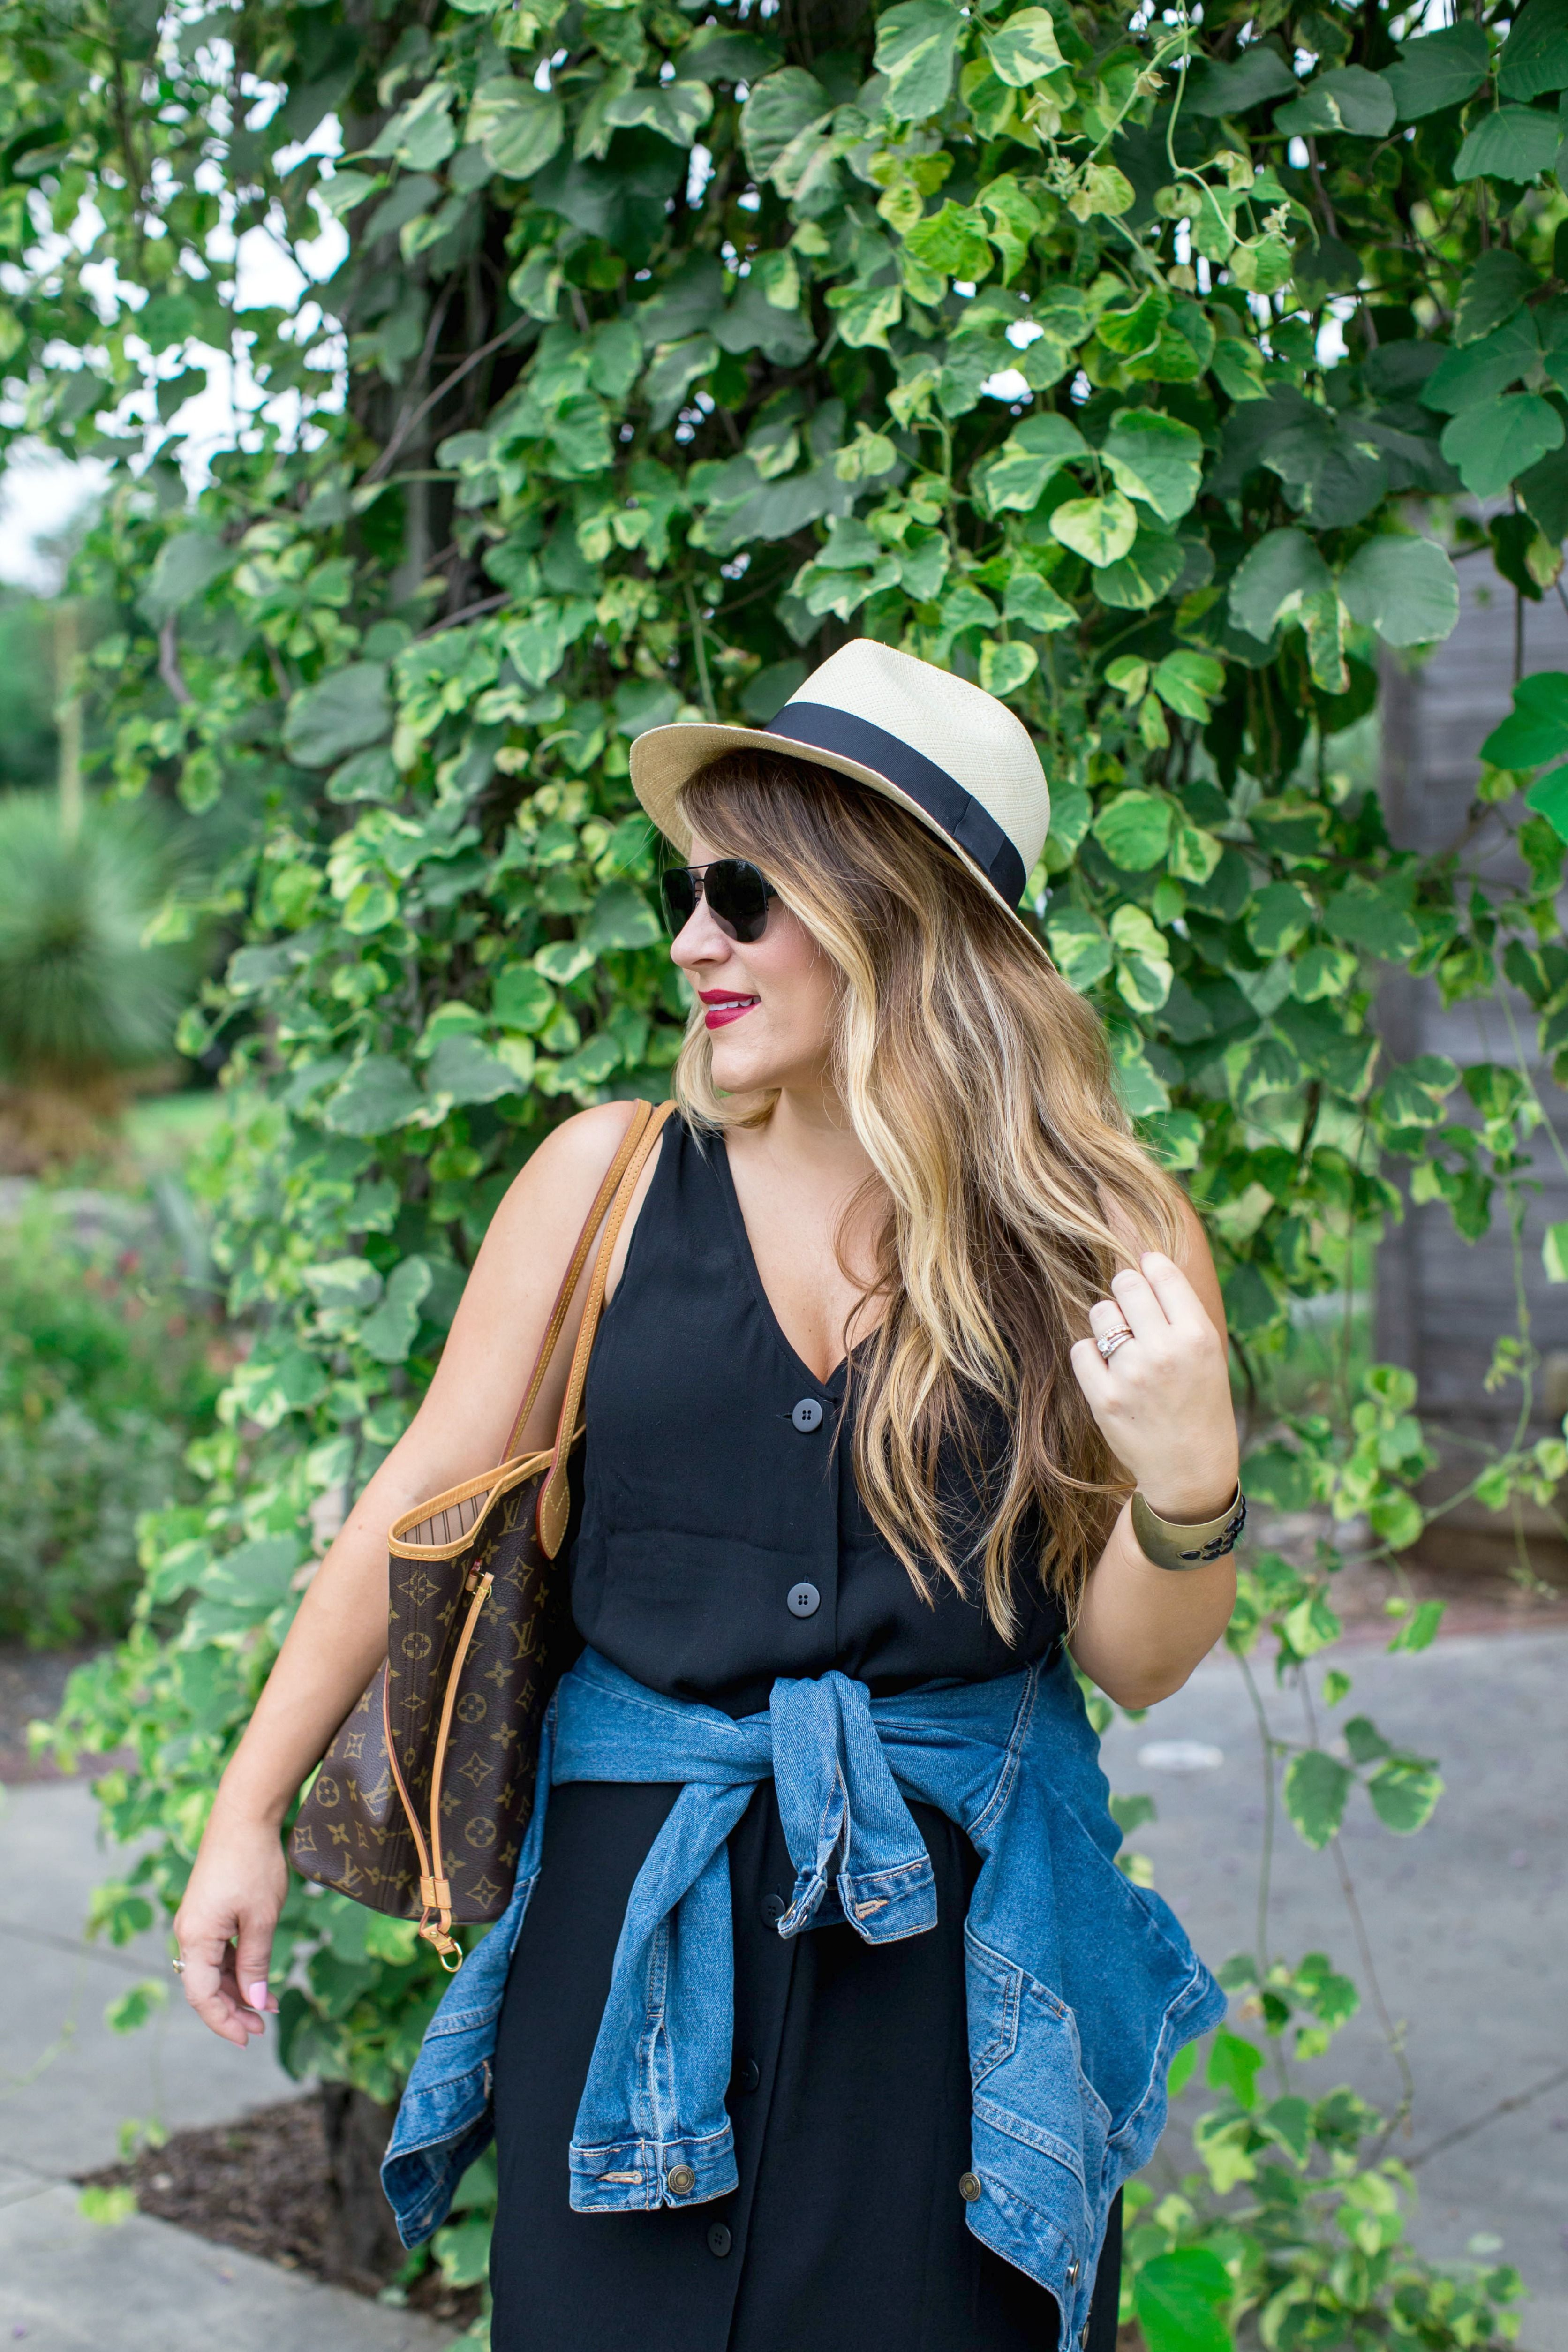 The Perfect Outfit for Hot Summer Days, Click to Read Why